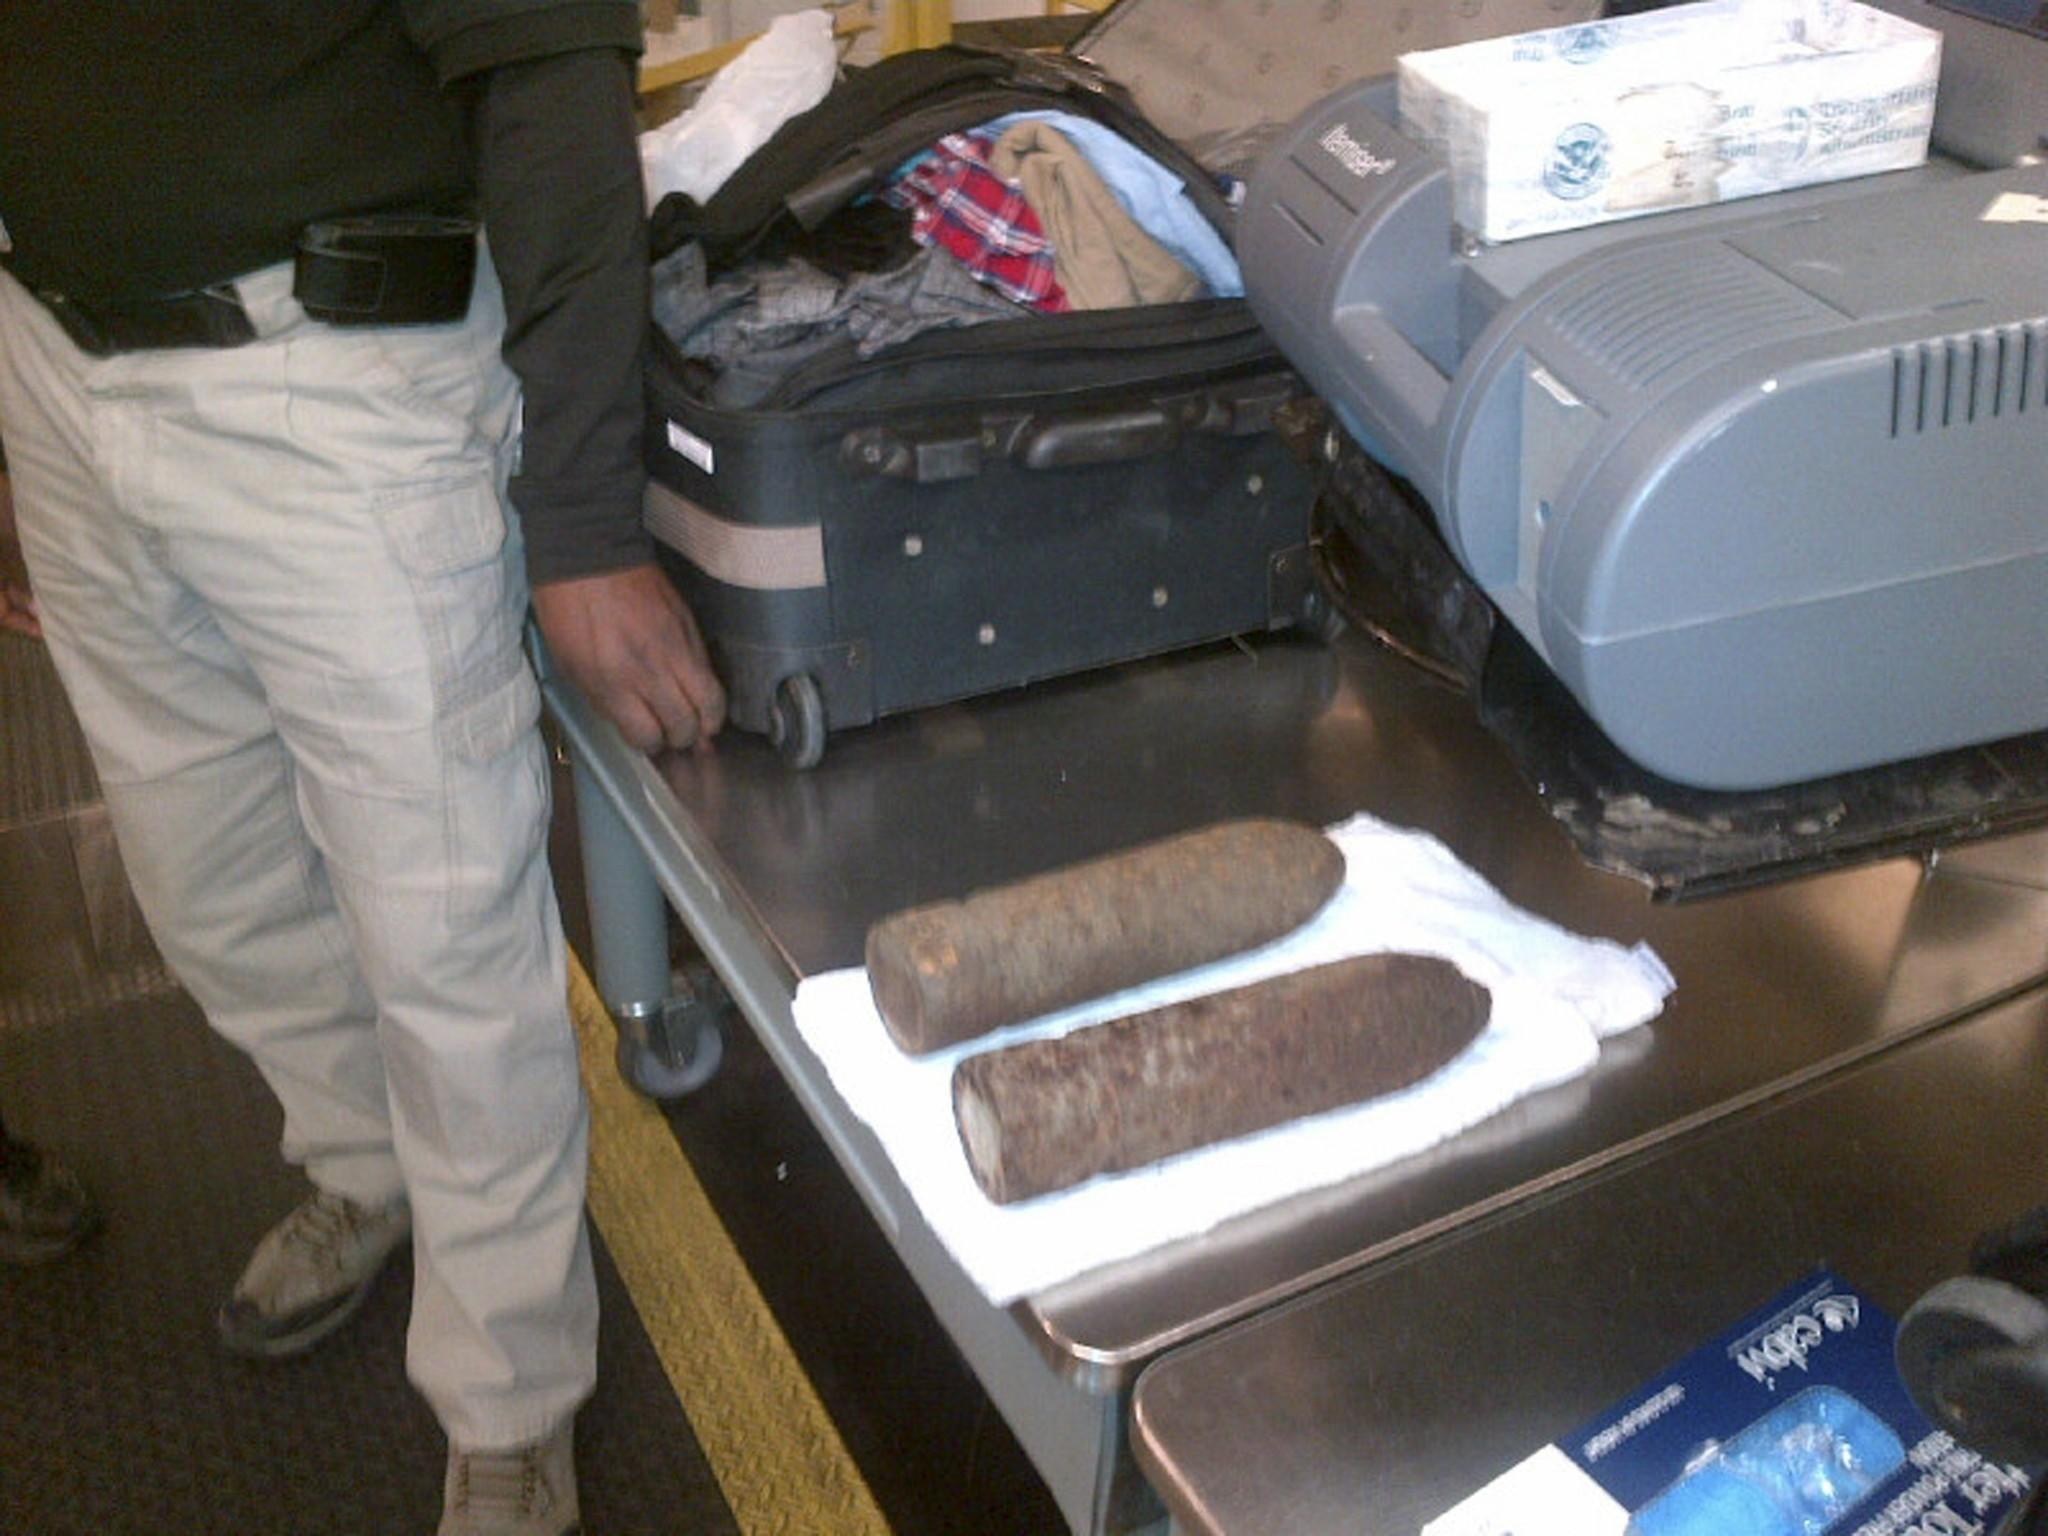 A U.S. Transportation Security Administration photo shows two military-grade shells in checked baggage at Chicago O'Hare International Airport. Two minors were interviewed by Chicago police and FBI after TSA officers at Chicago O'Hare International Airport spotted two military-grade shells in their checked baggage.